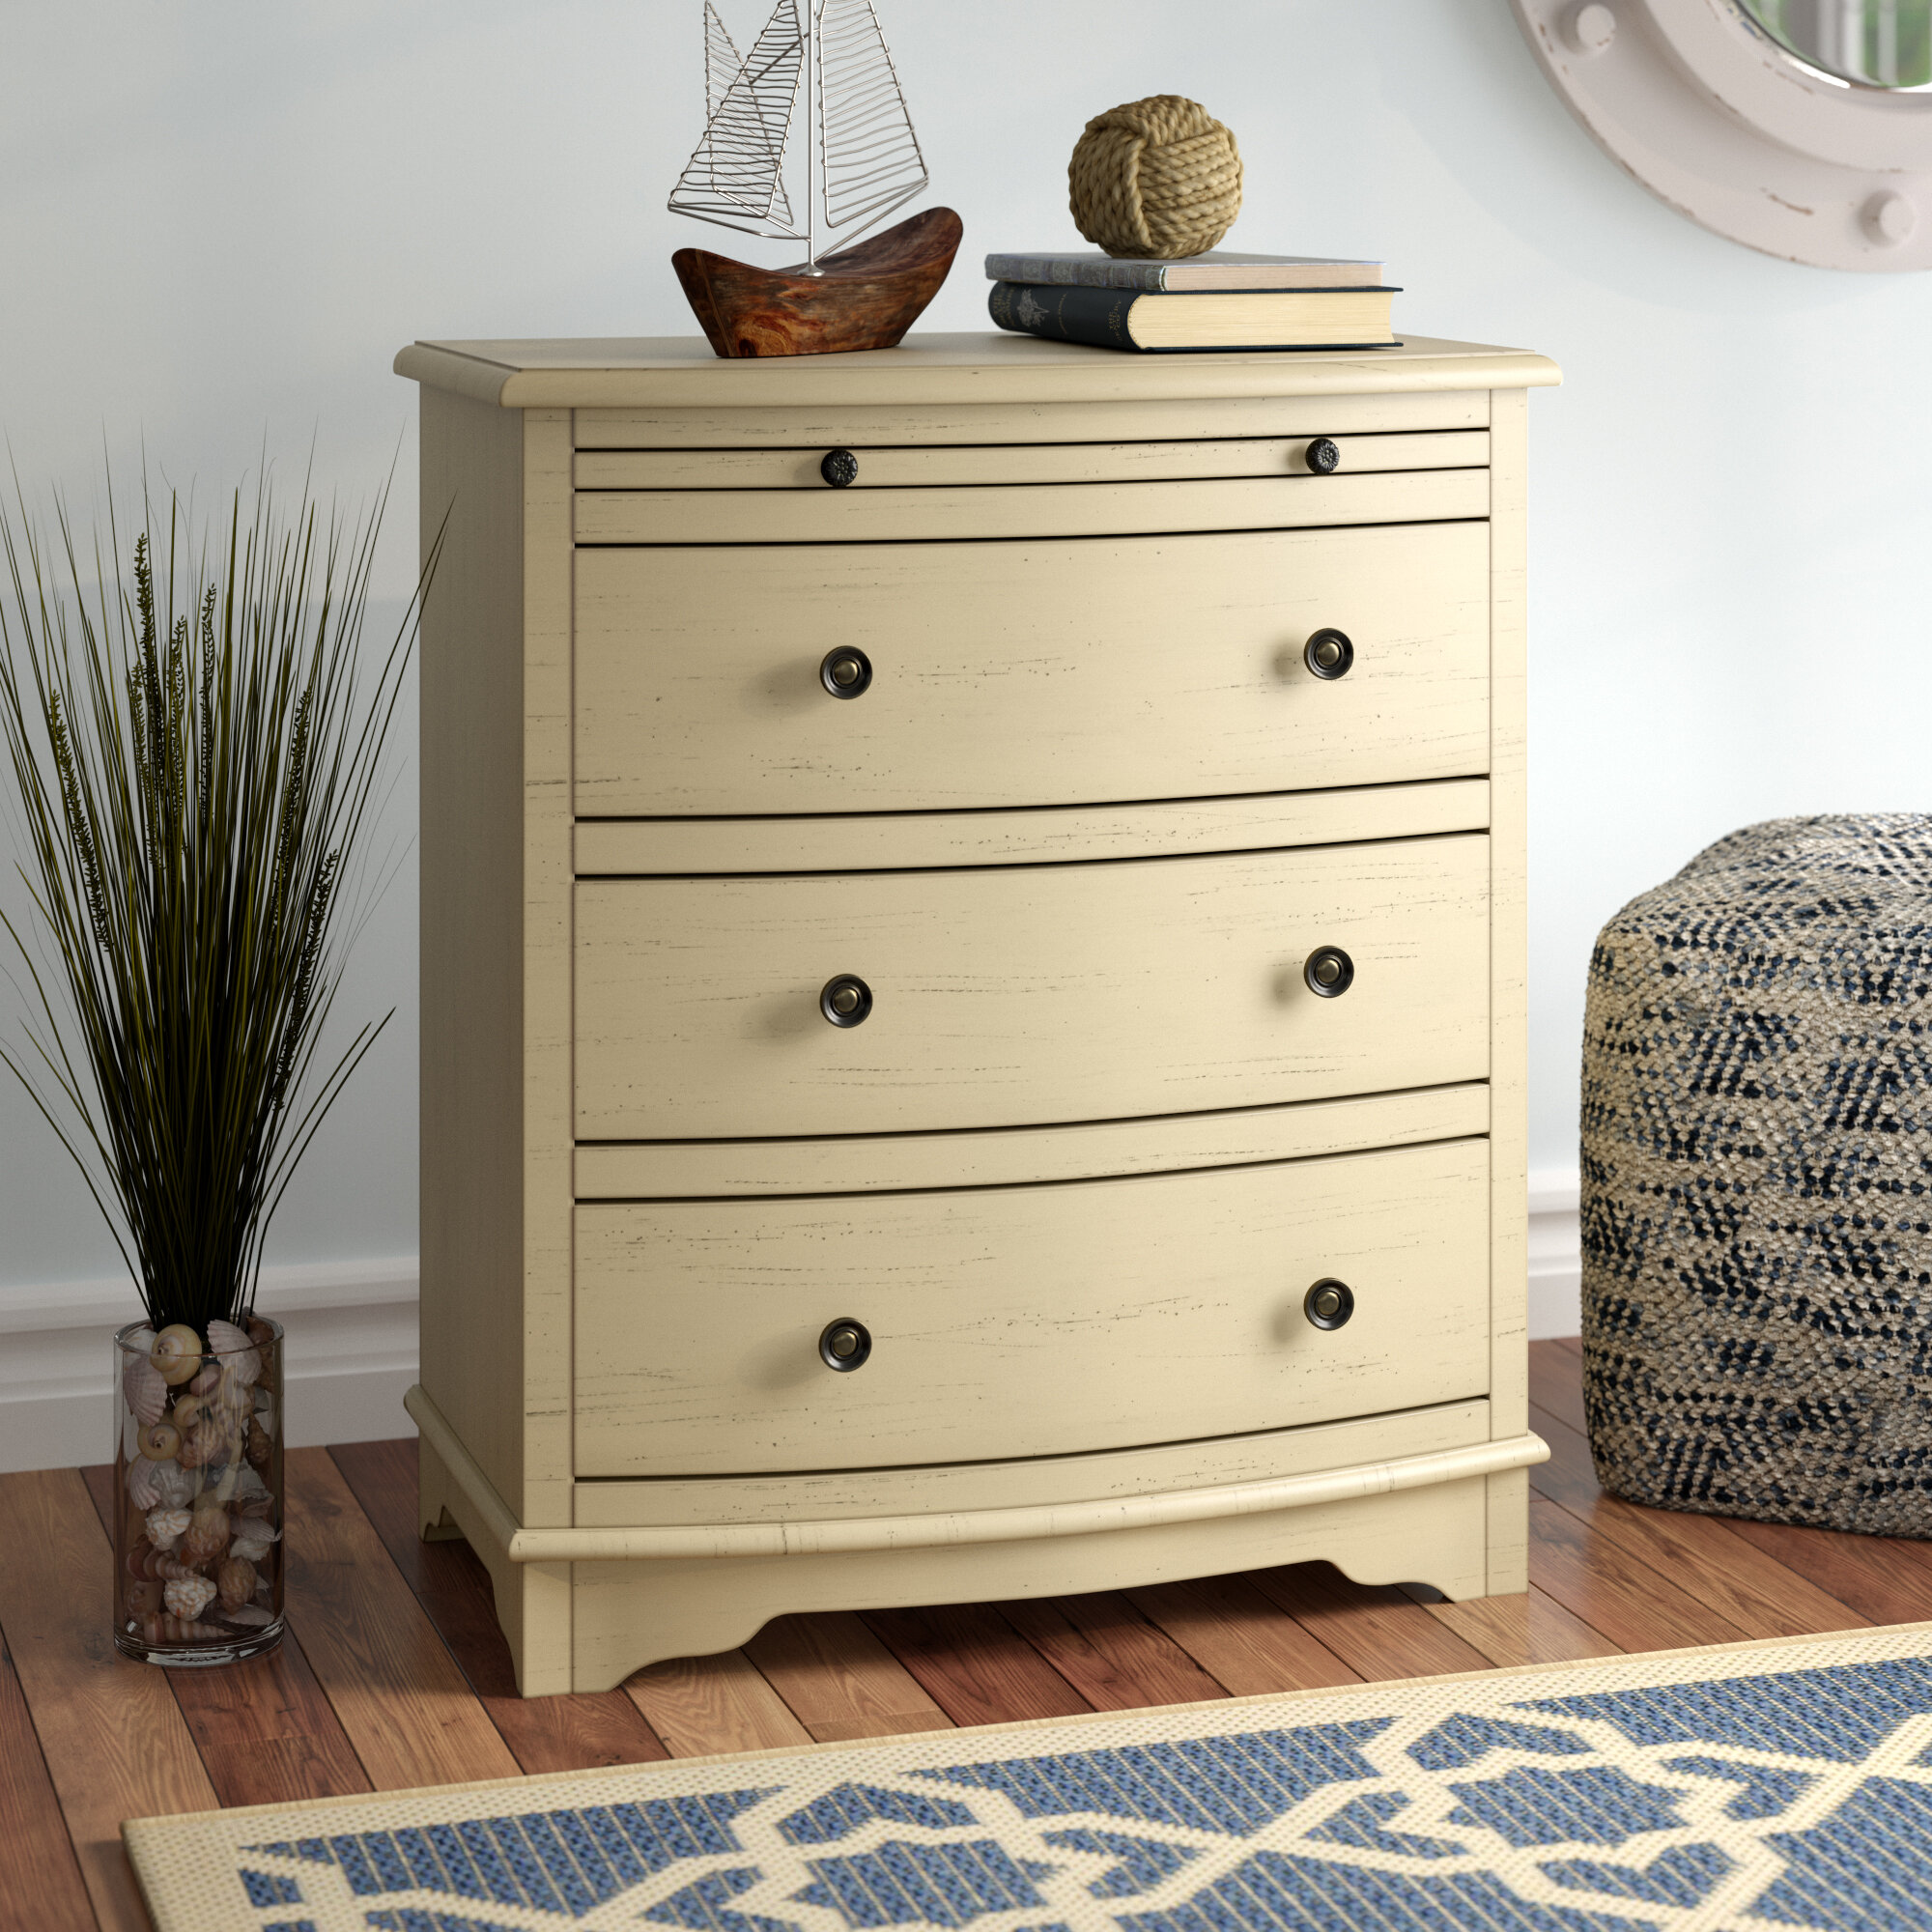 Beachcrest Home Dubreuil 4 Drawer Chairside Accent Chest In Ivory